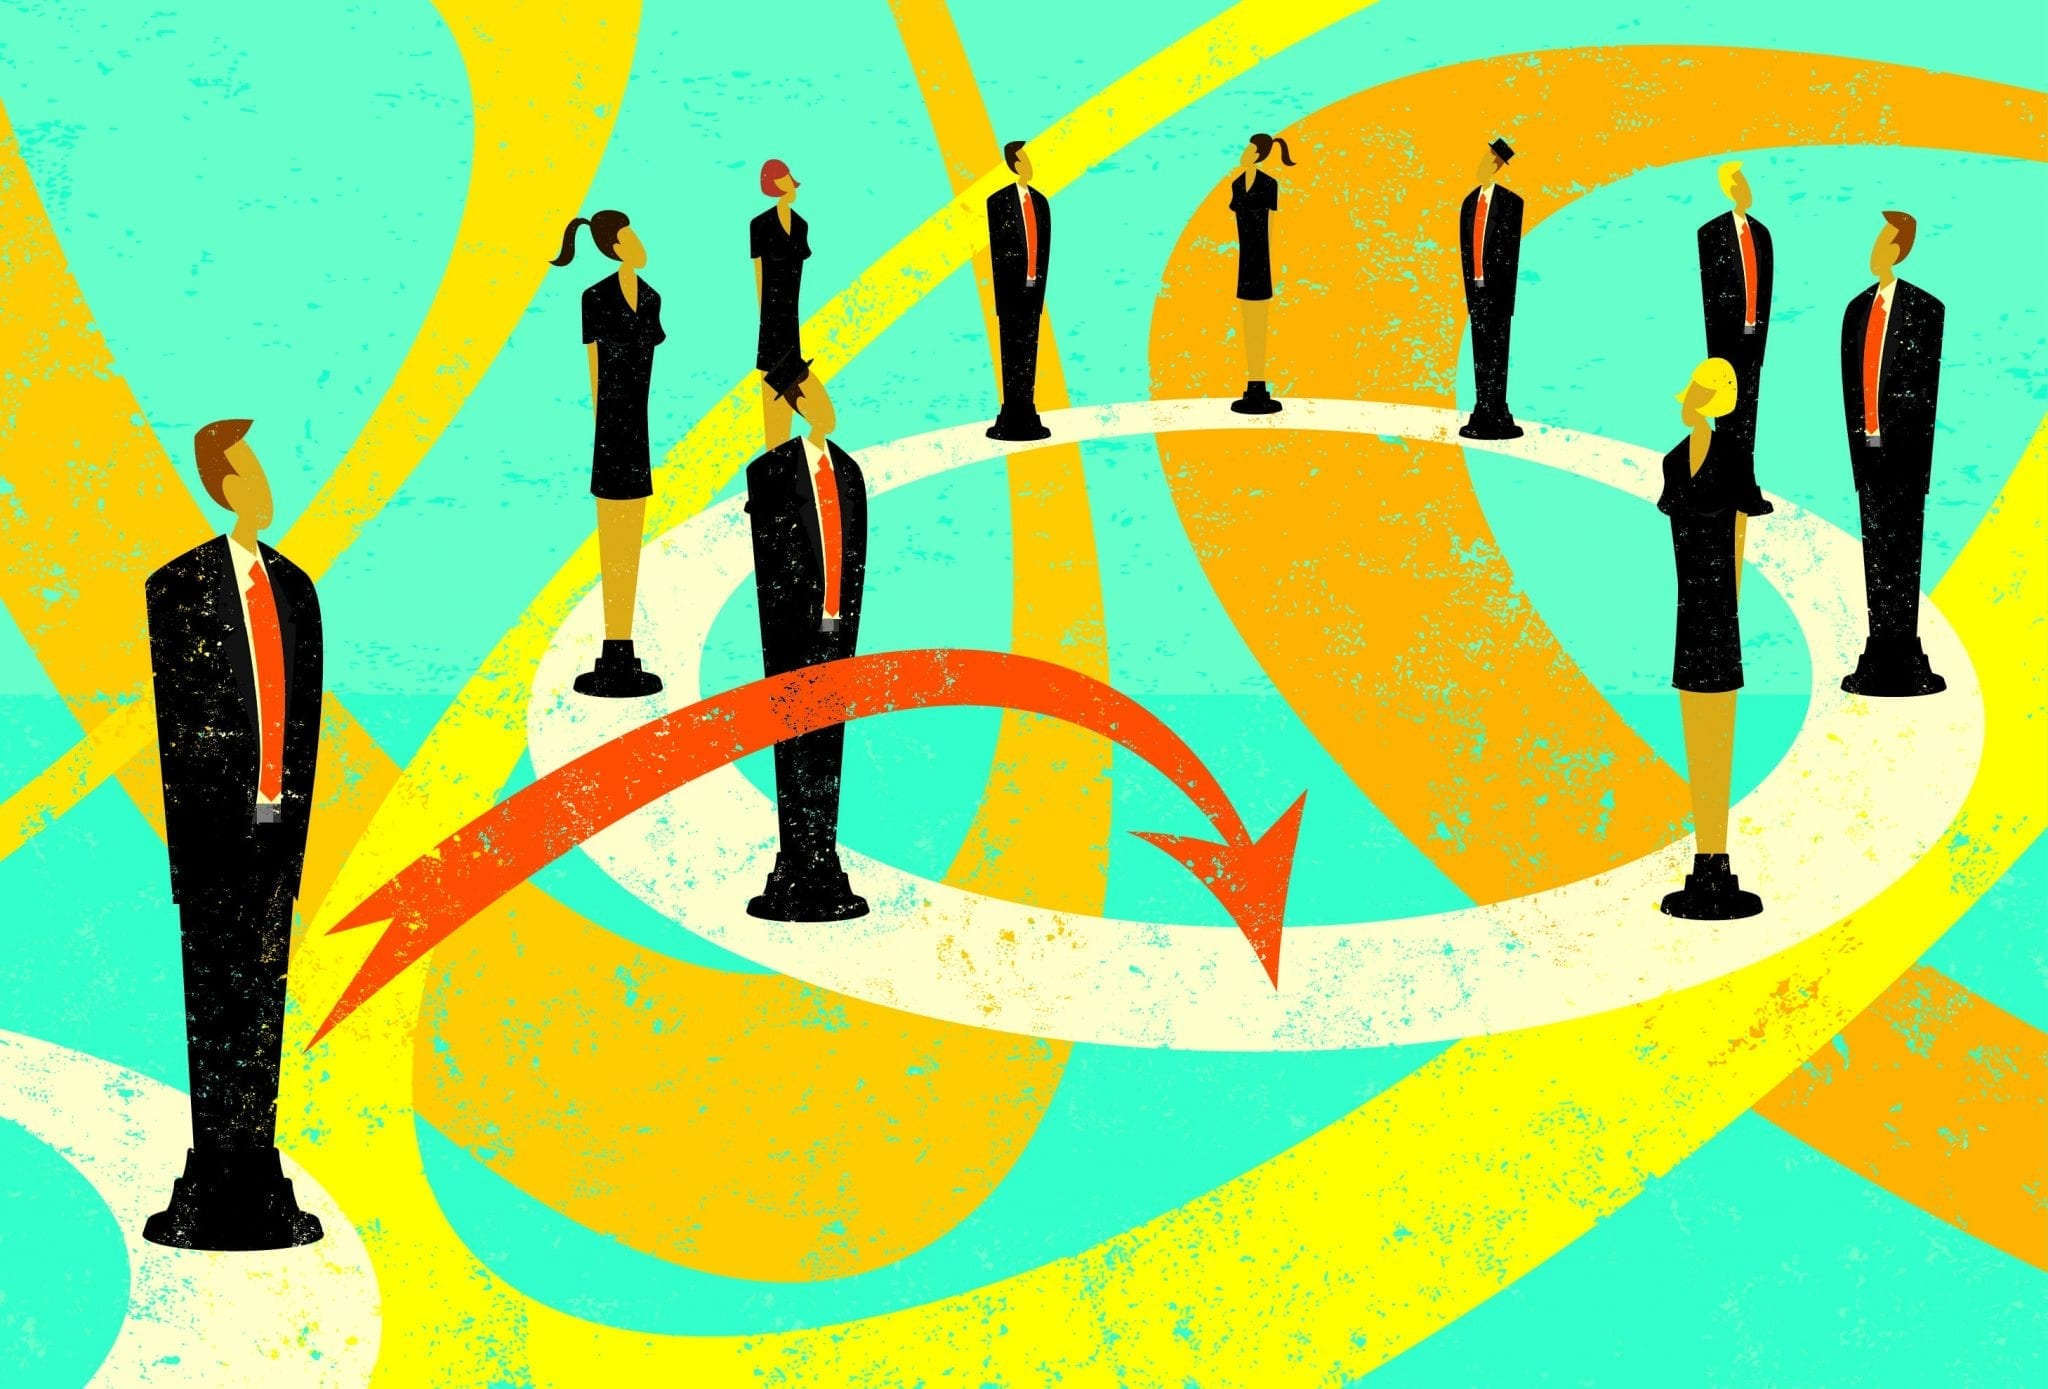 HIGH-PERFORMING TEAMS PART II: GAINING BROAD PARTICIPATION